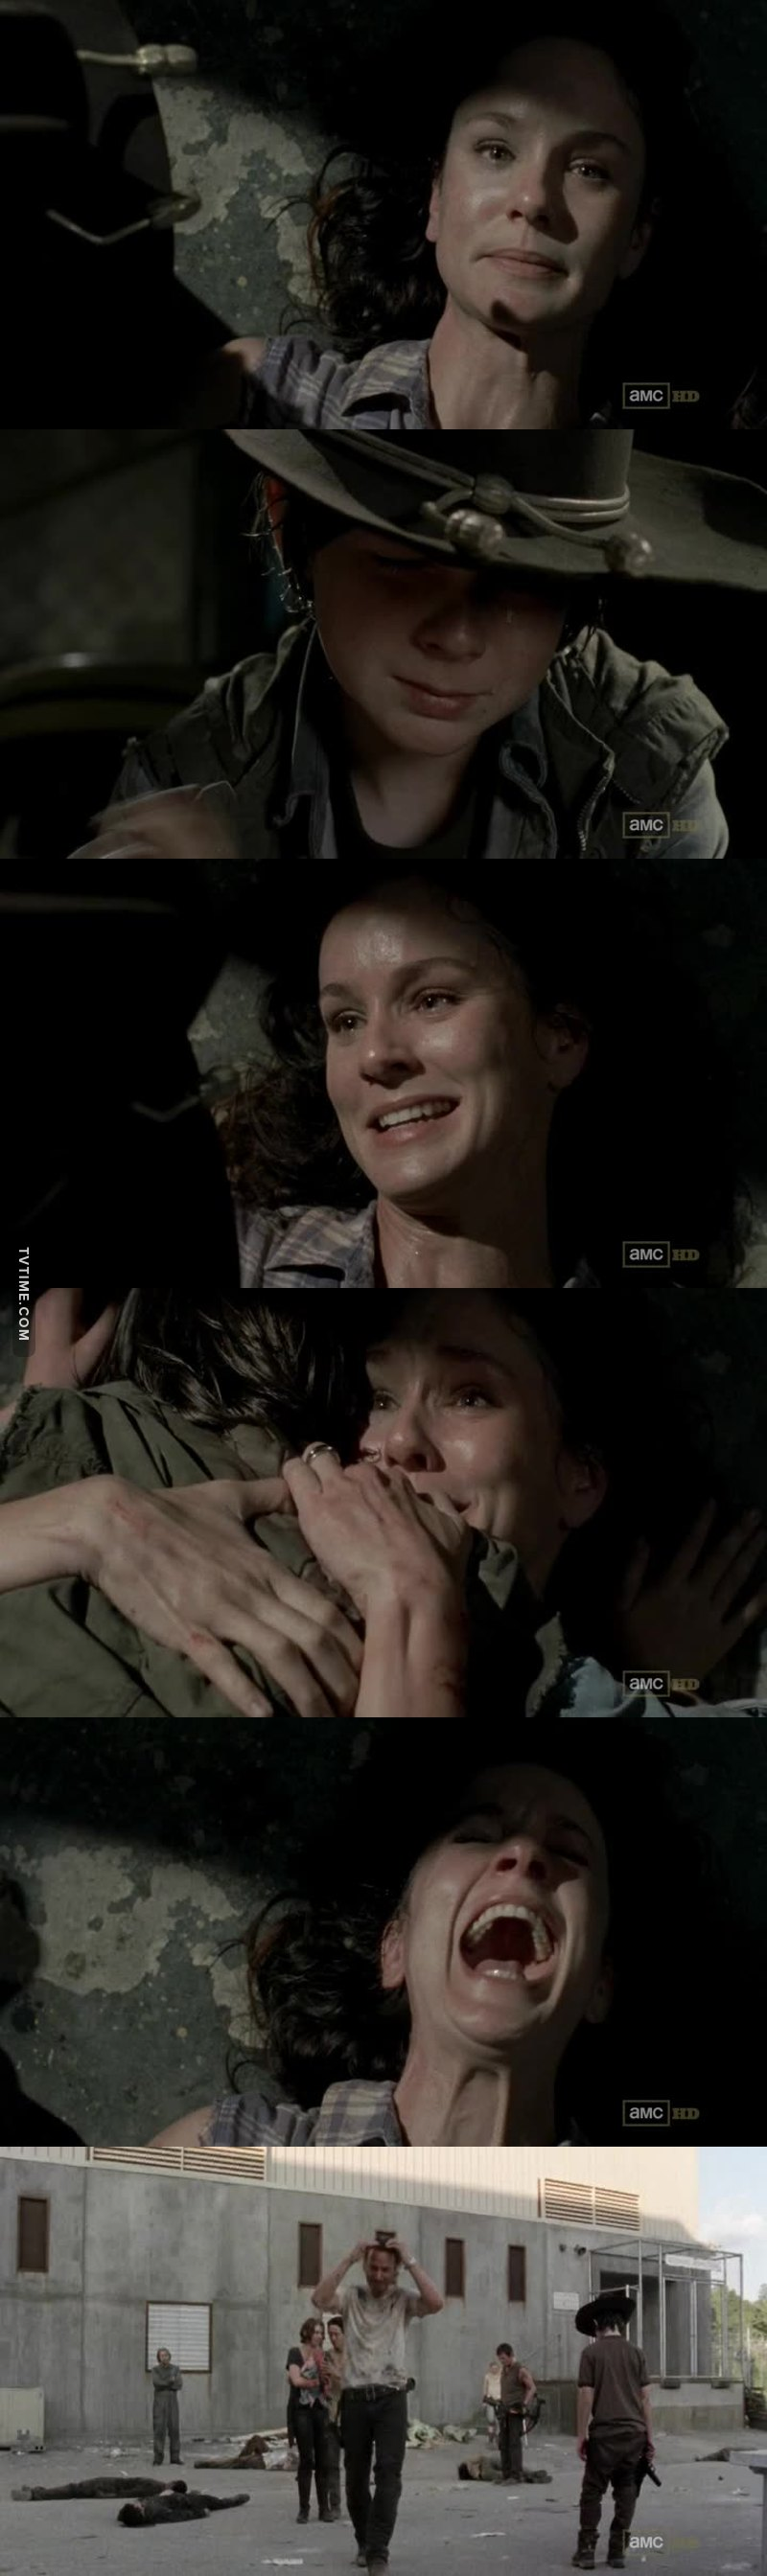 I wanted Lori to die. And now she is dead. So why do I feel like shit?